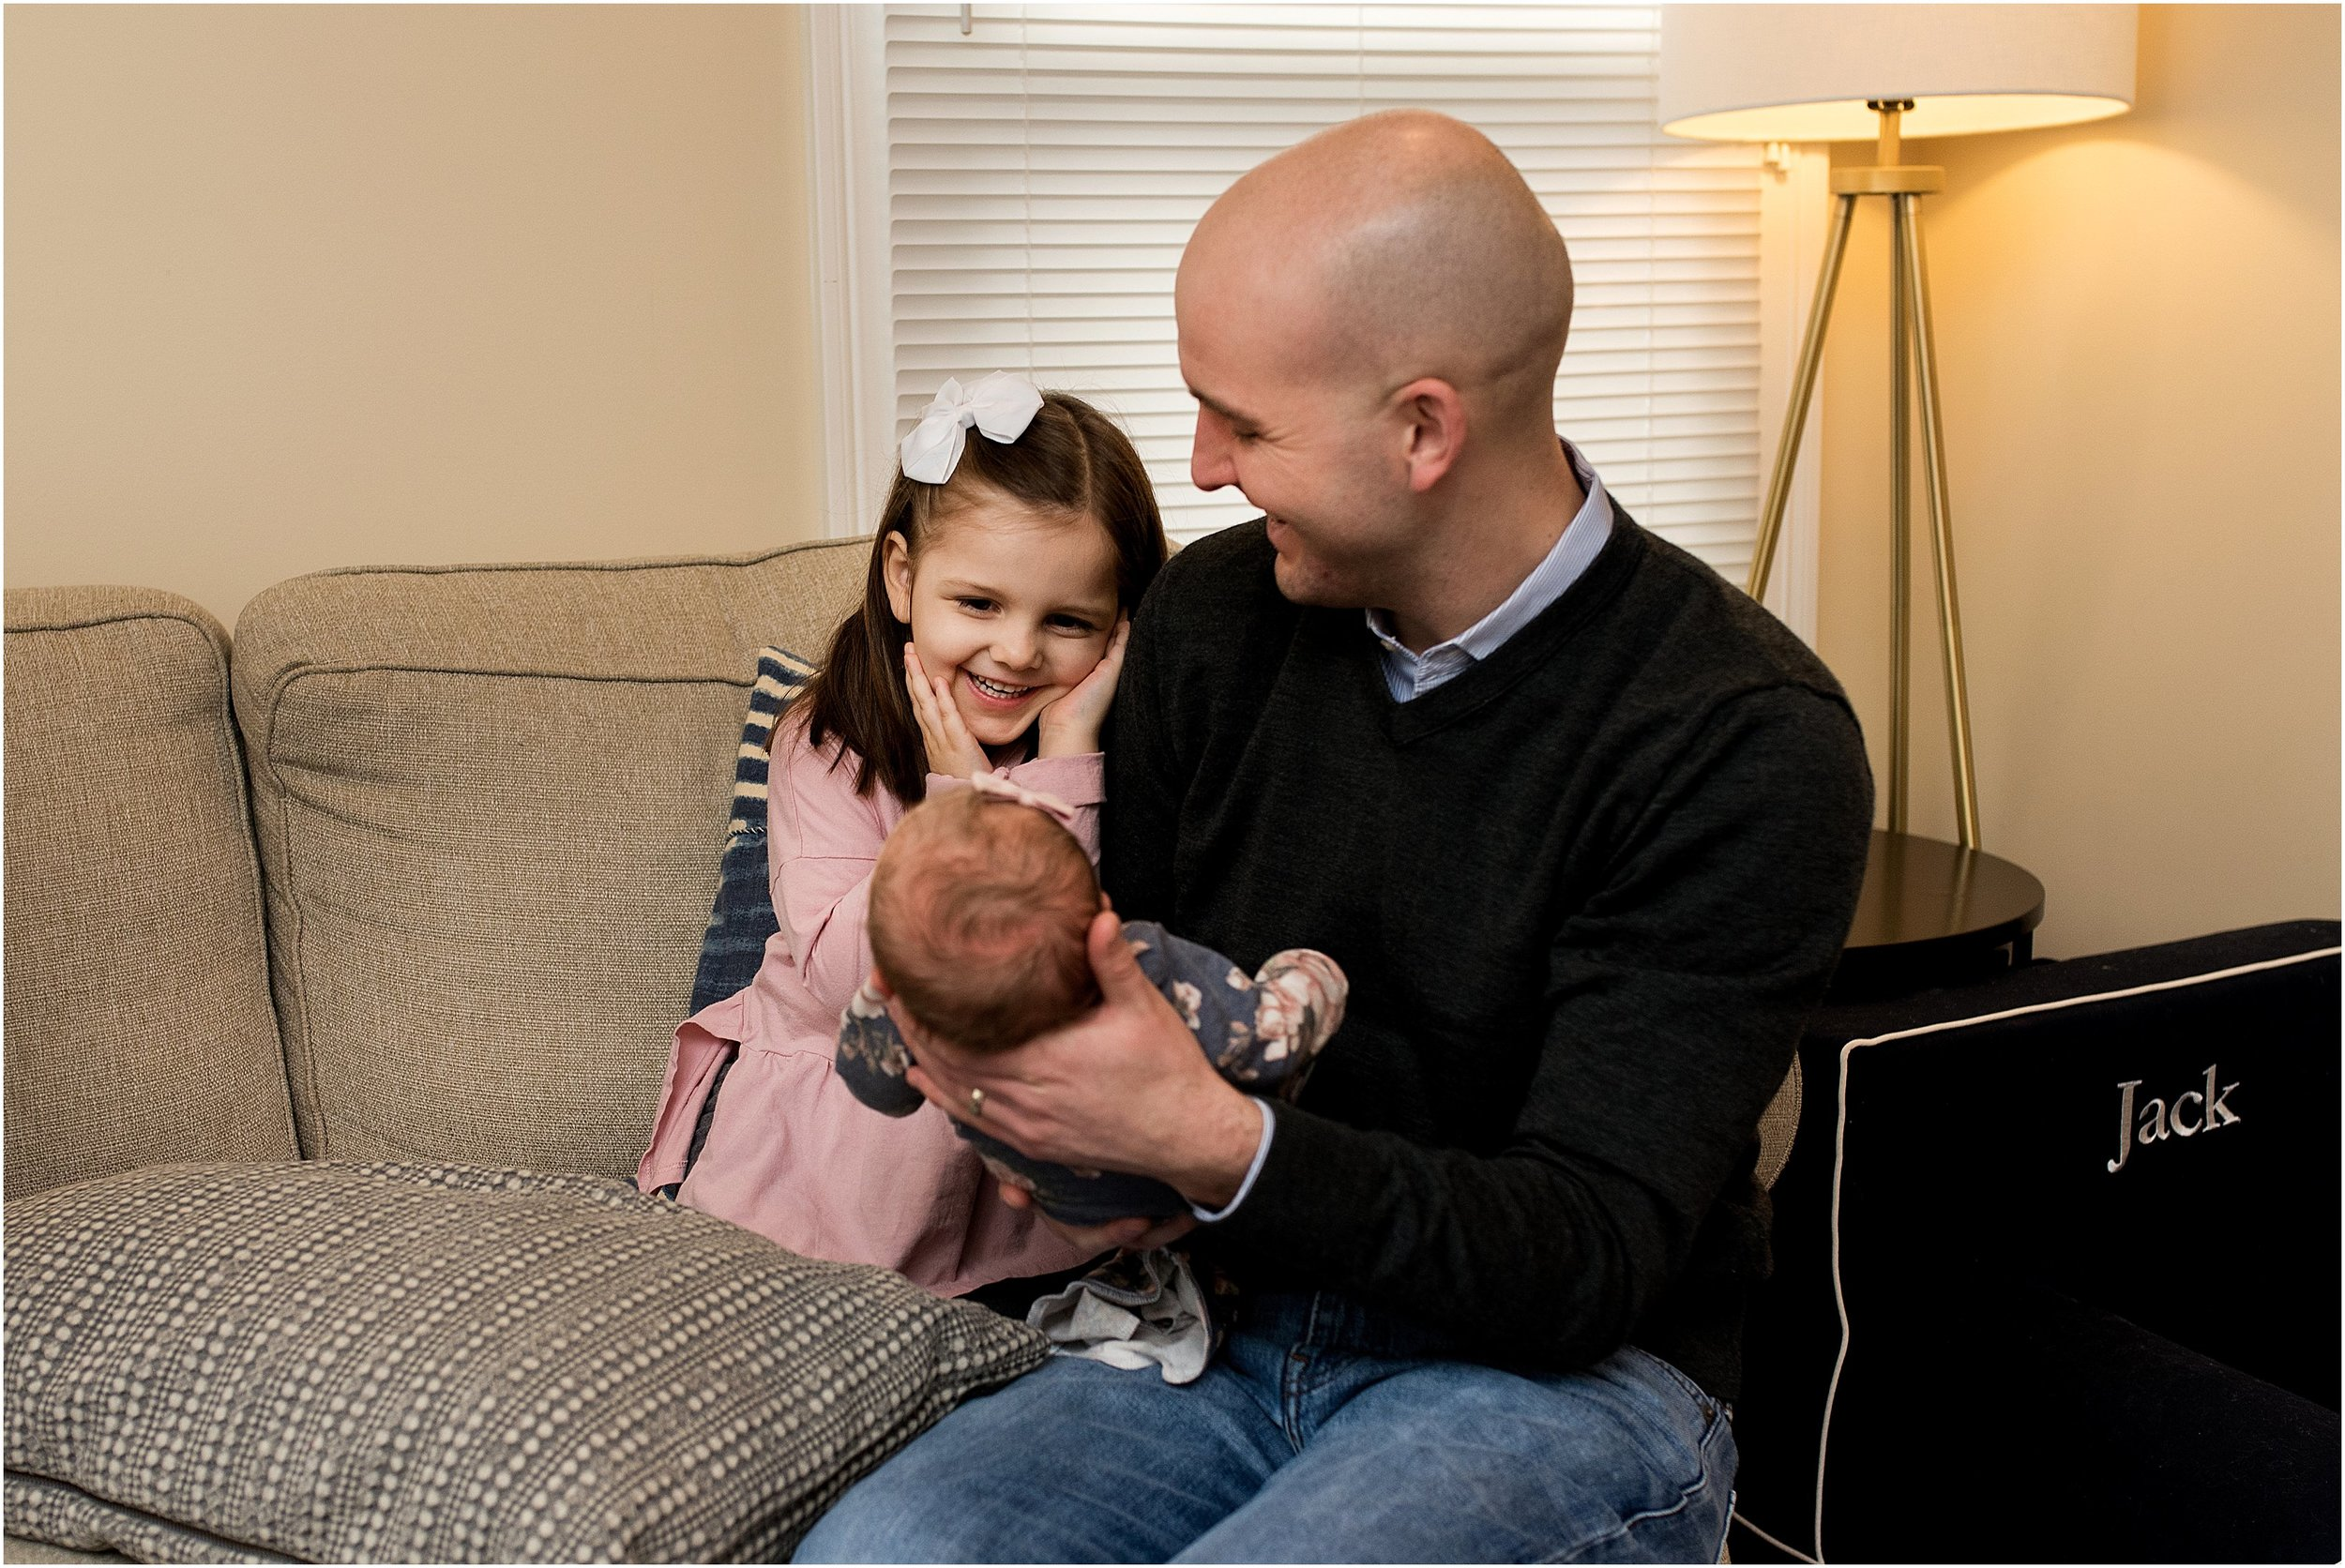 Dad holding baby daughter during Connecticut newborn photography session.